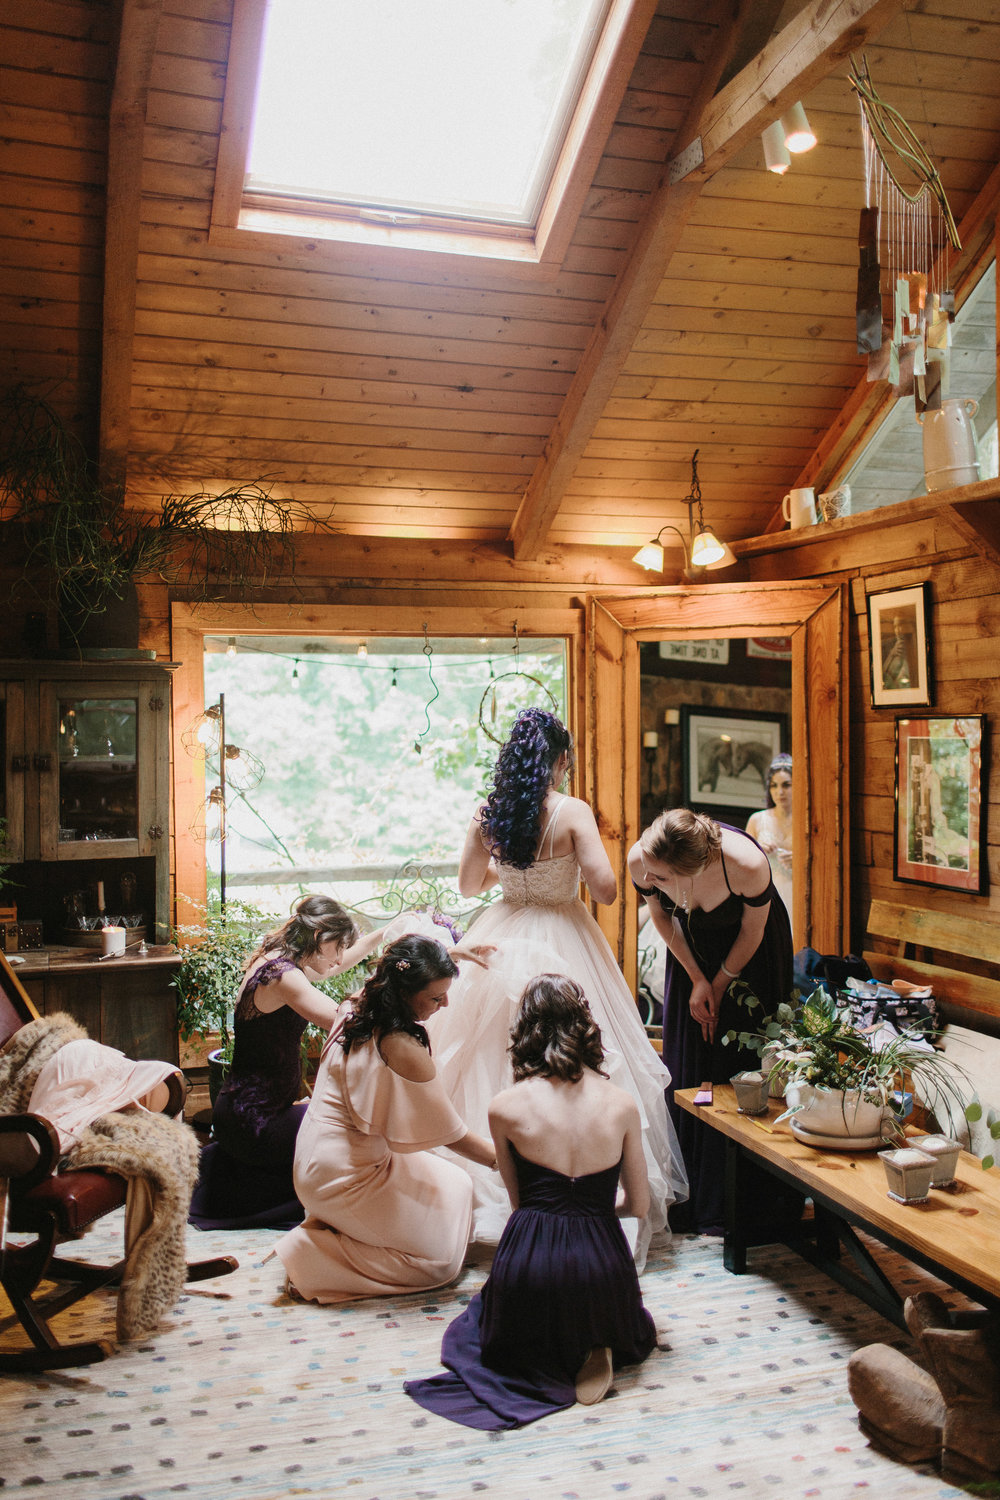 neverland_farms_atlanta_wedding_photographer_documentary_river_west_1219.jpg